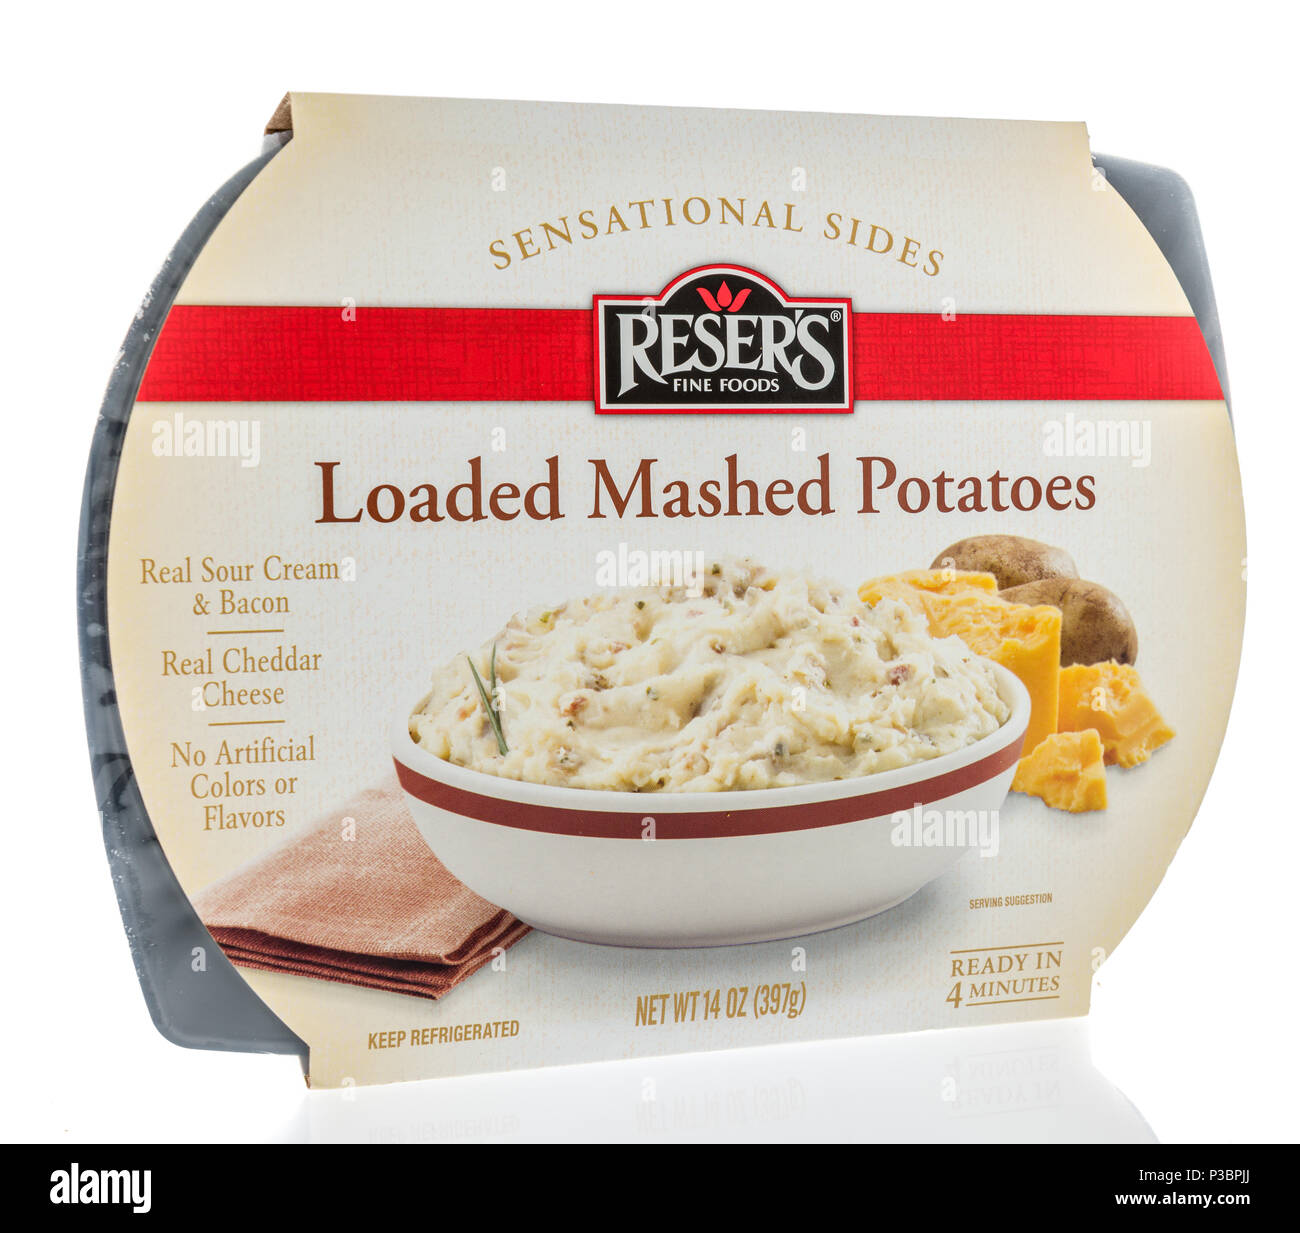 Winneconne - 8 June 2018: A package of Reser's fine foods sensational sides loaded mashed potatoes on an isolated background. - Stock Image